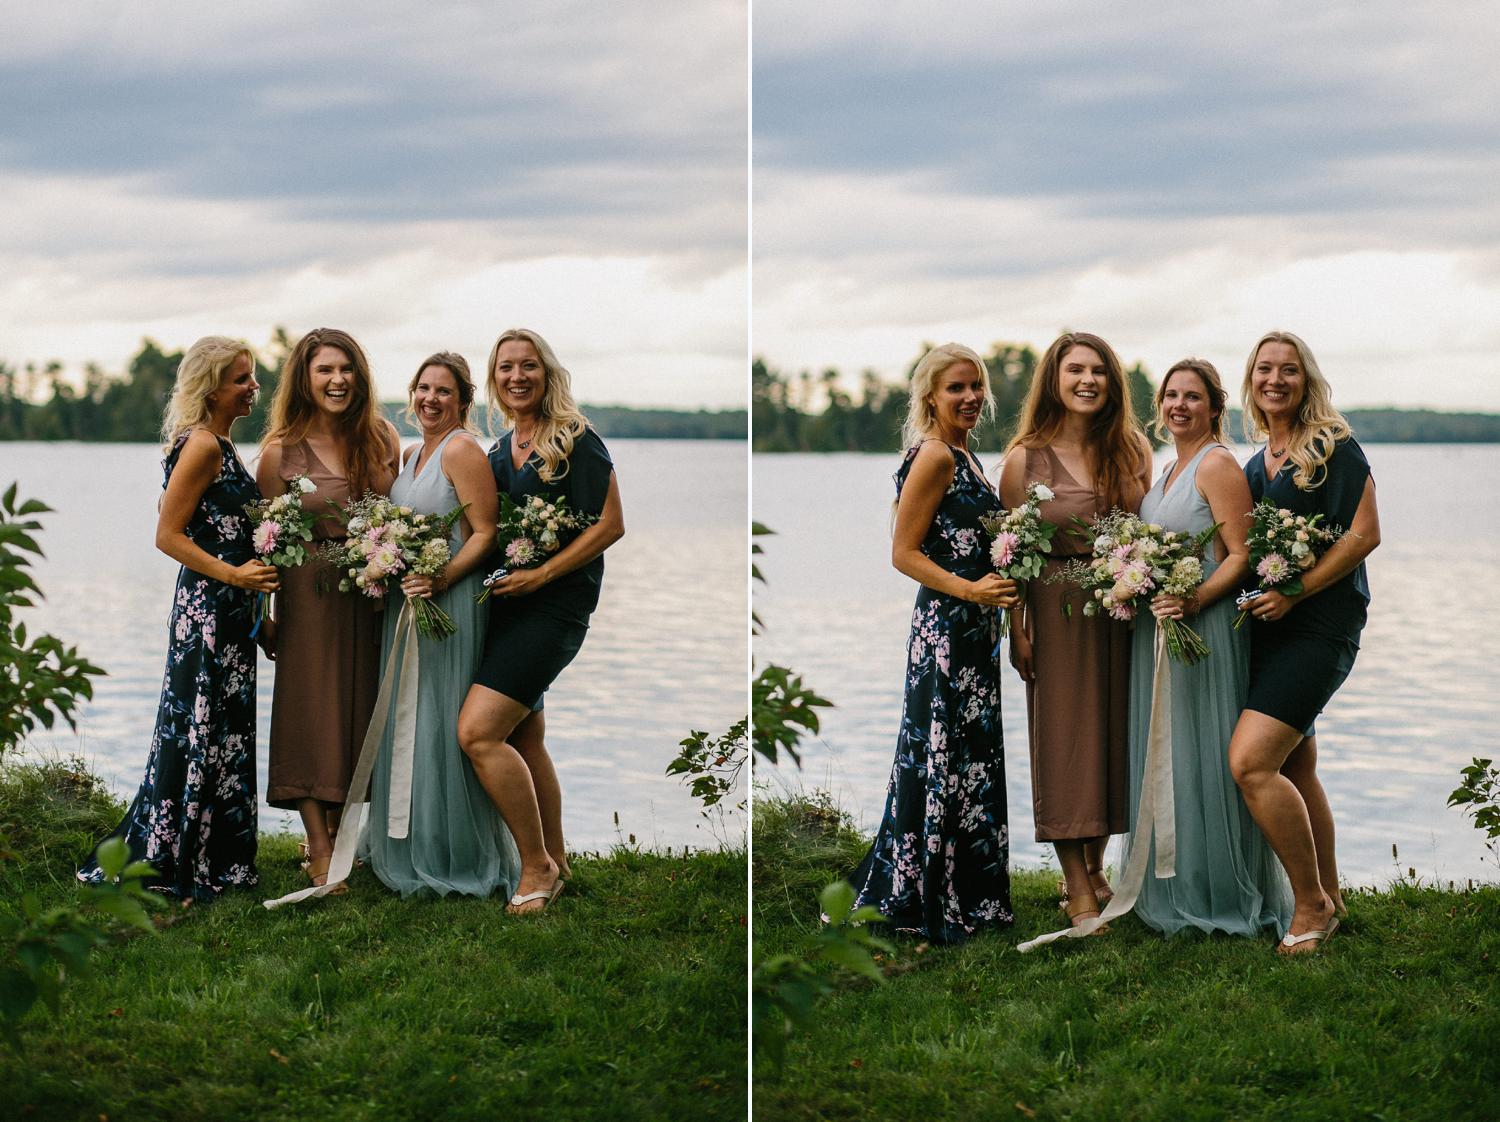 kerry ford photography - small intimate backyard rideau lake island wedding perth ontario-095.jpg